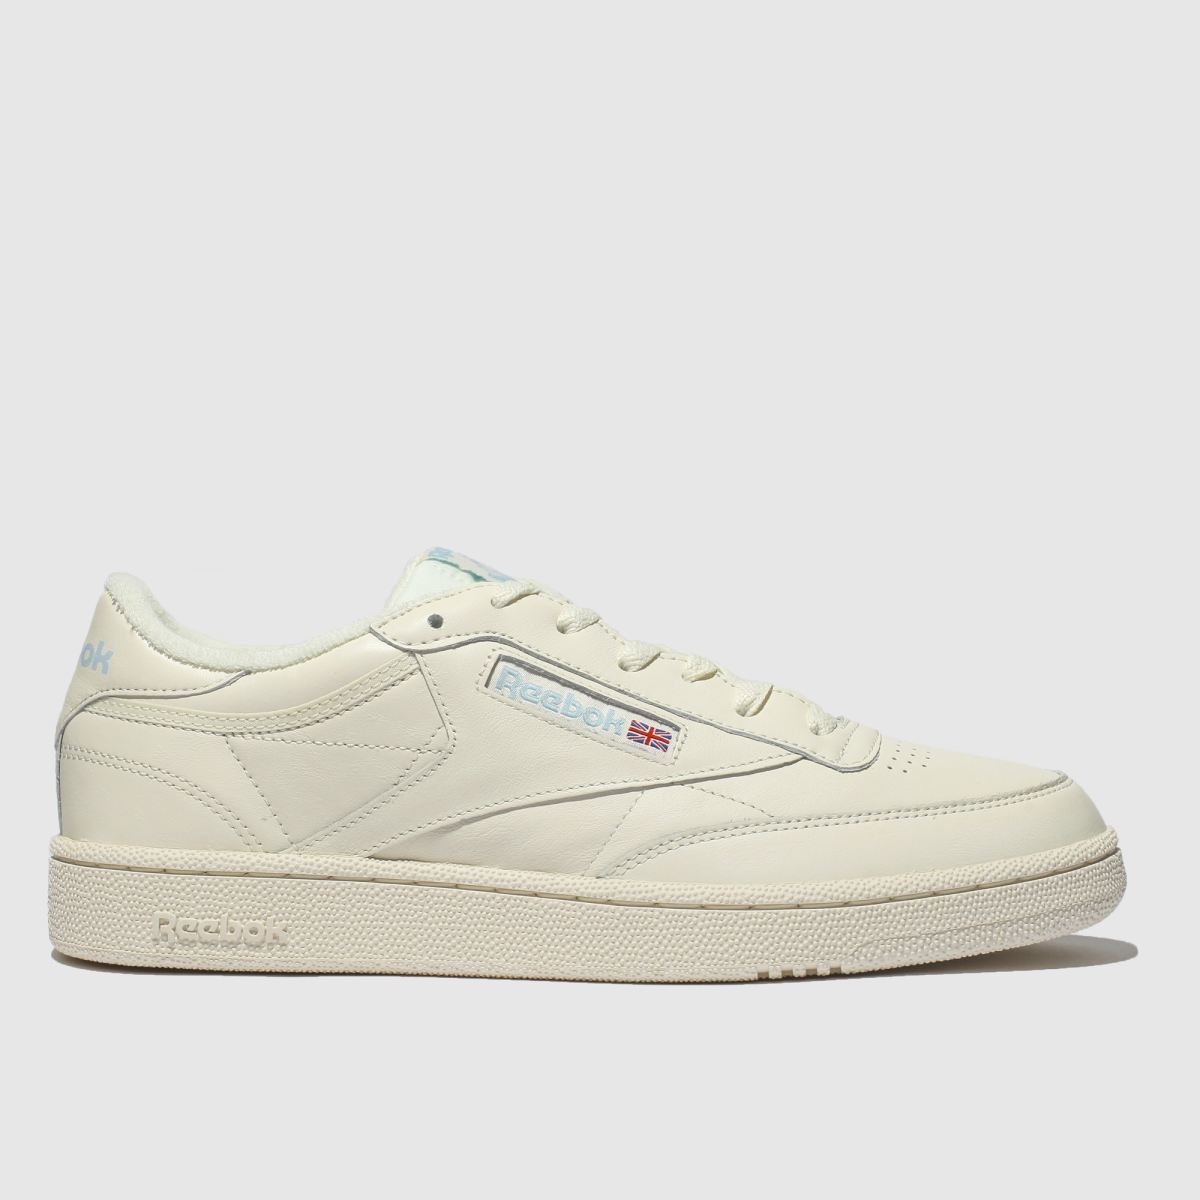 8a8c1bc95d28e8 Reebok White Club C 85 Mu Trainers - Schuh at Westquay - Shop Online